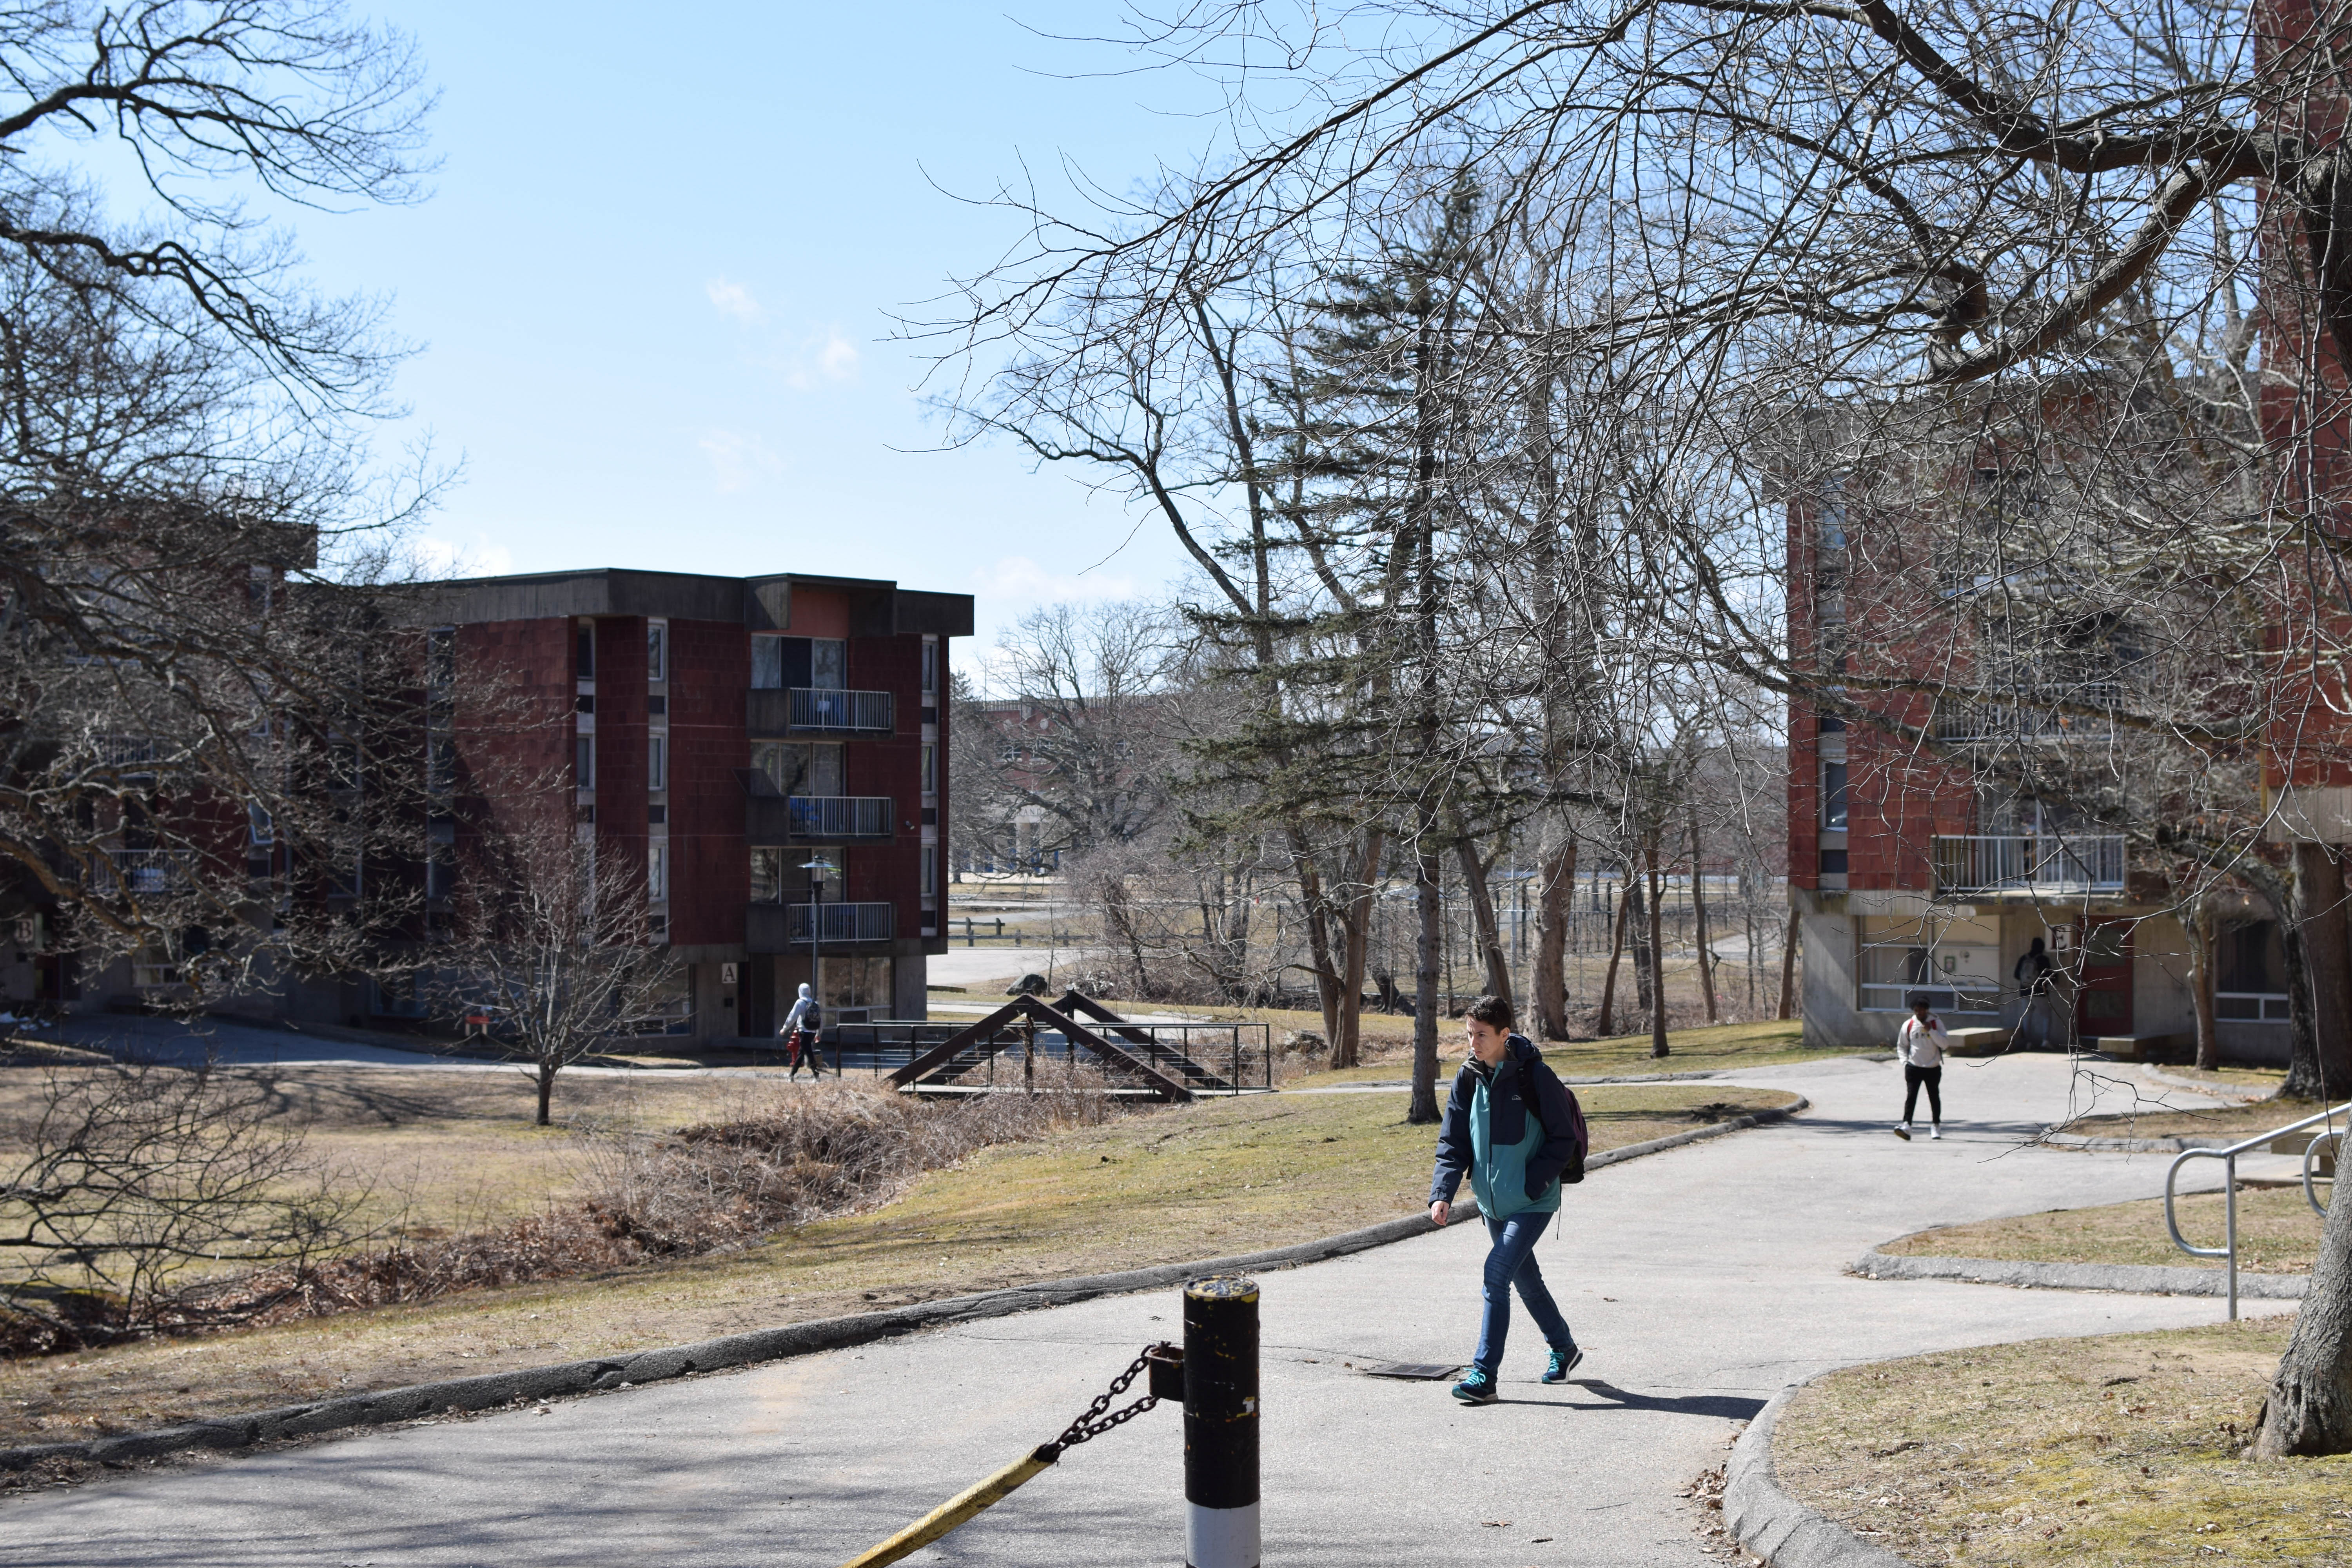 Student Reaction Mixed on Accessibility of RAs